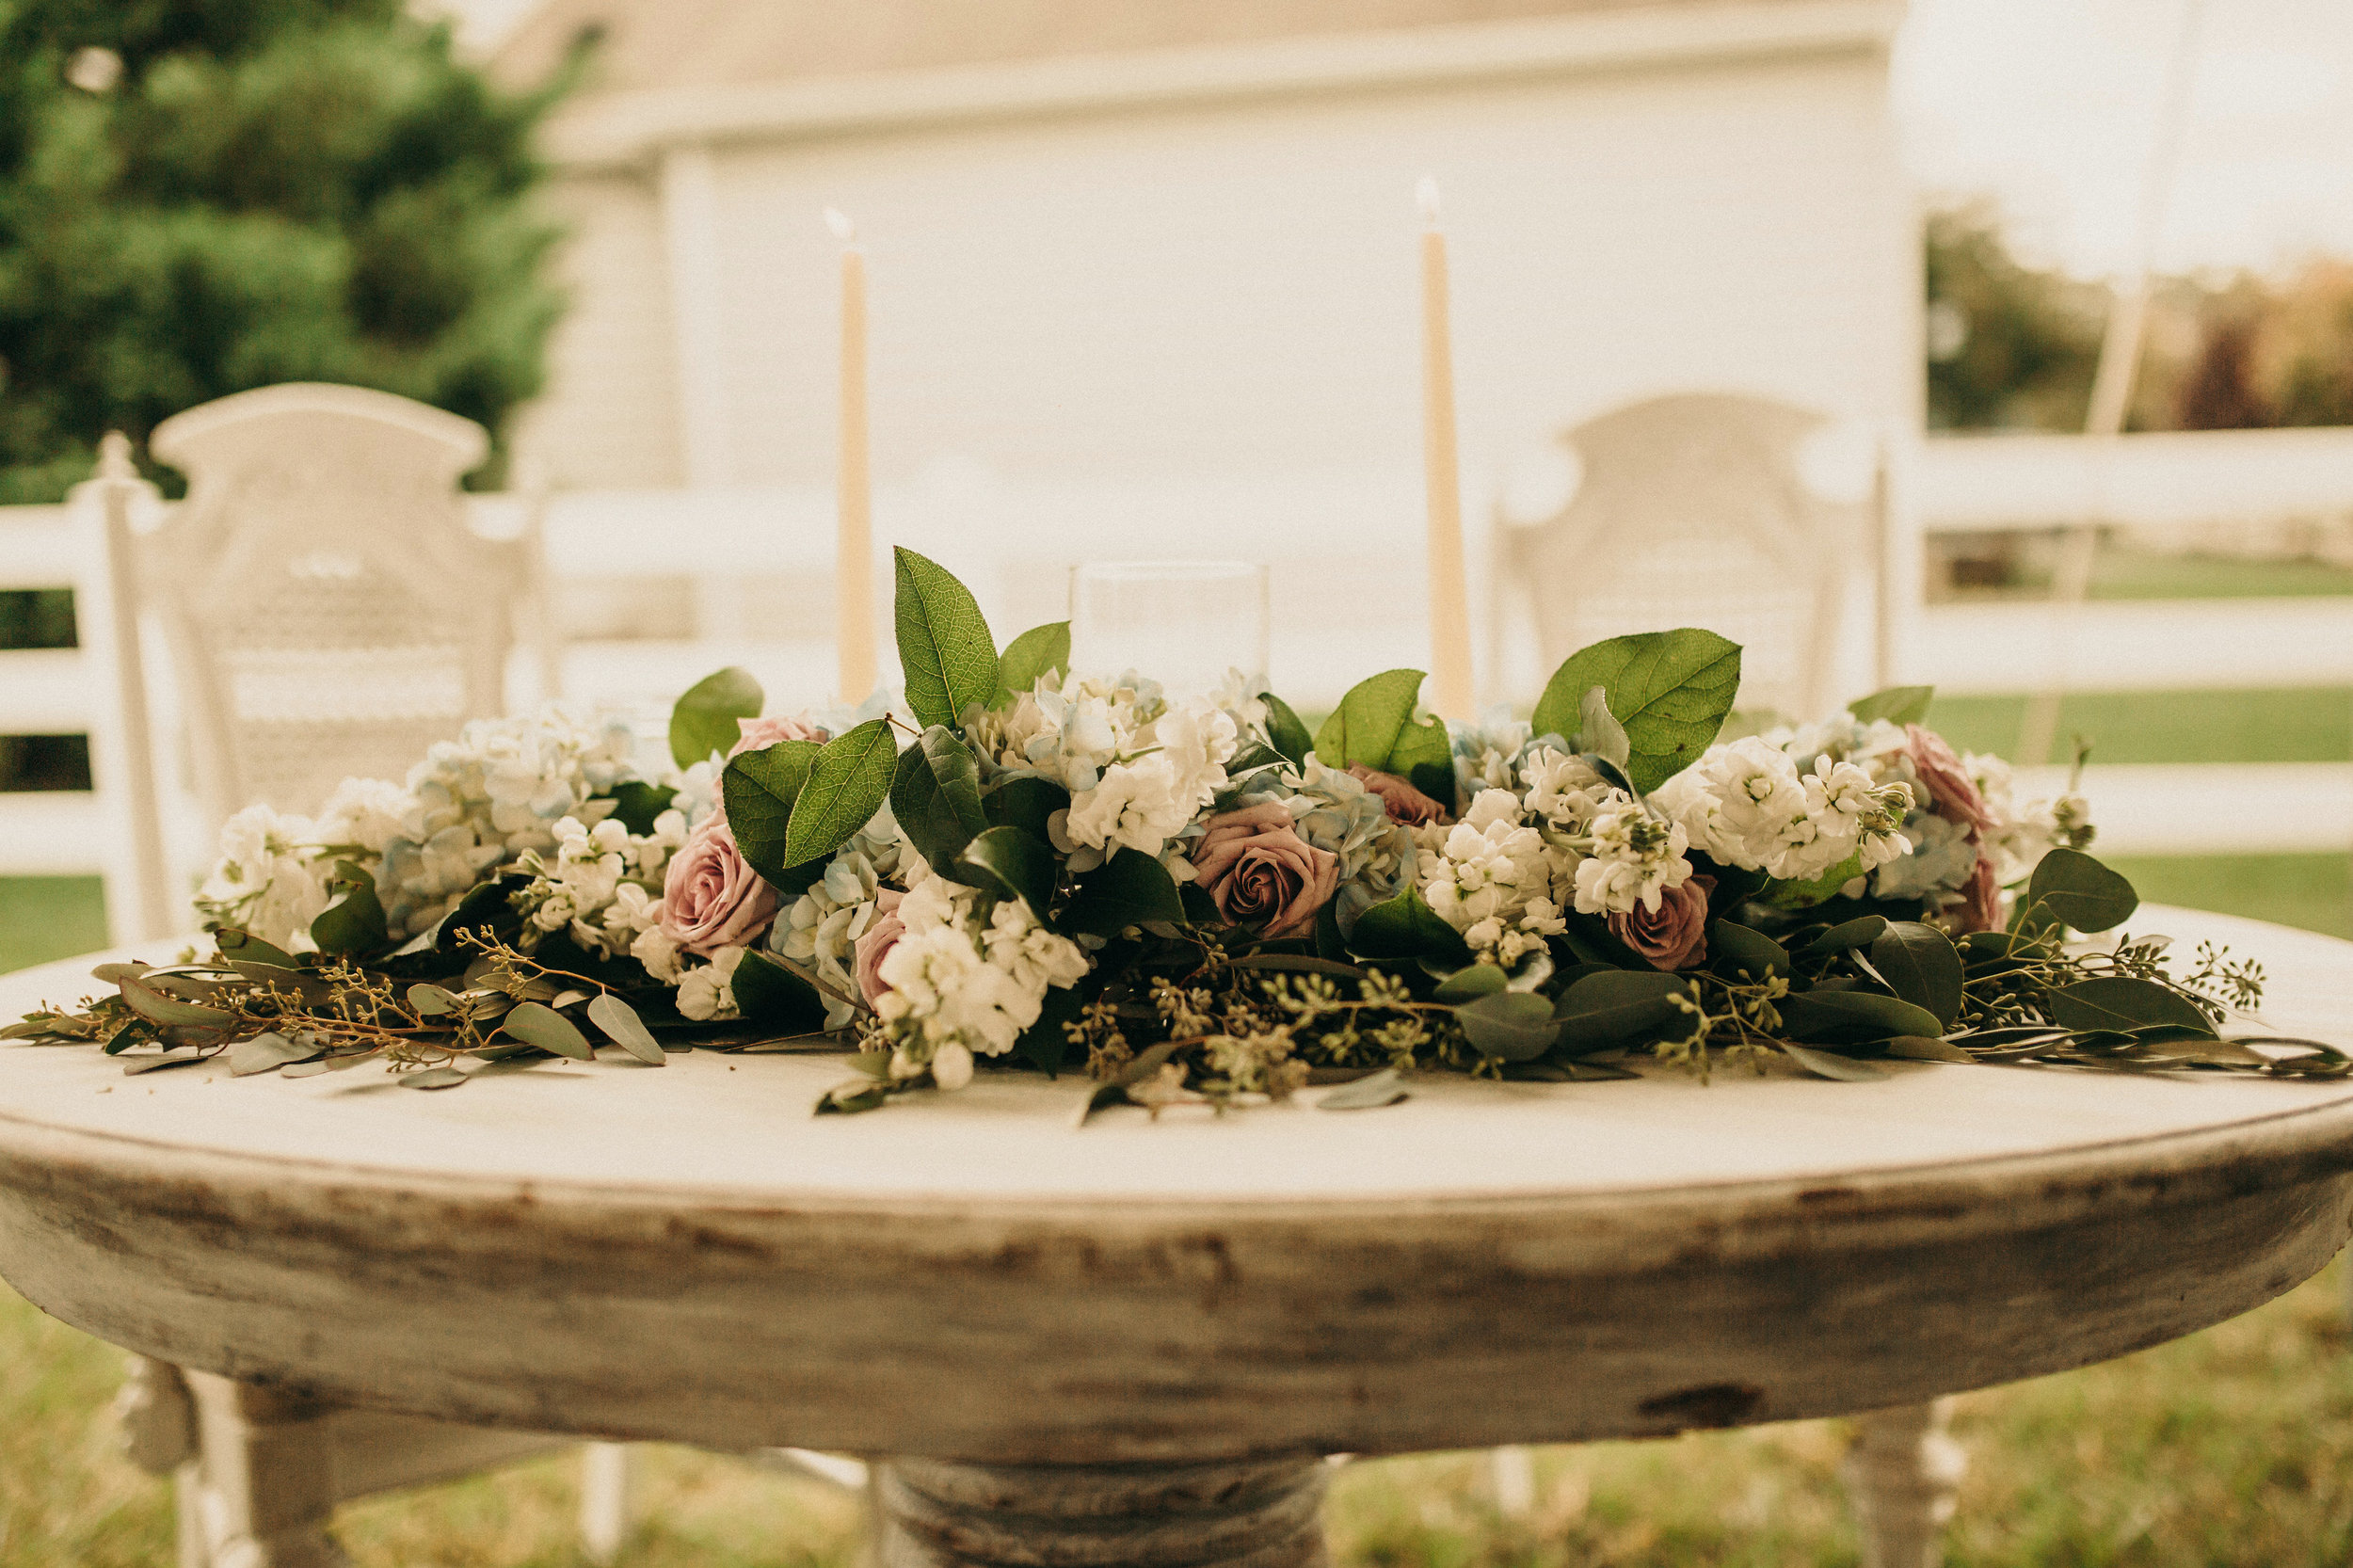 Florals and greens for a Sweetheart table with Seeded Eucalyptus, Salal, Stock, Hydrangea and Roses. Photography by Olivia Markle.